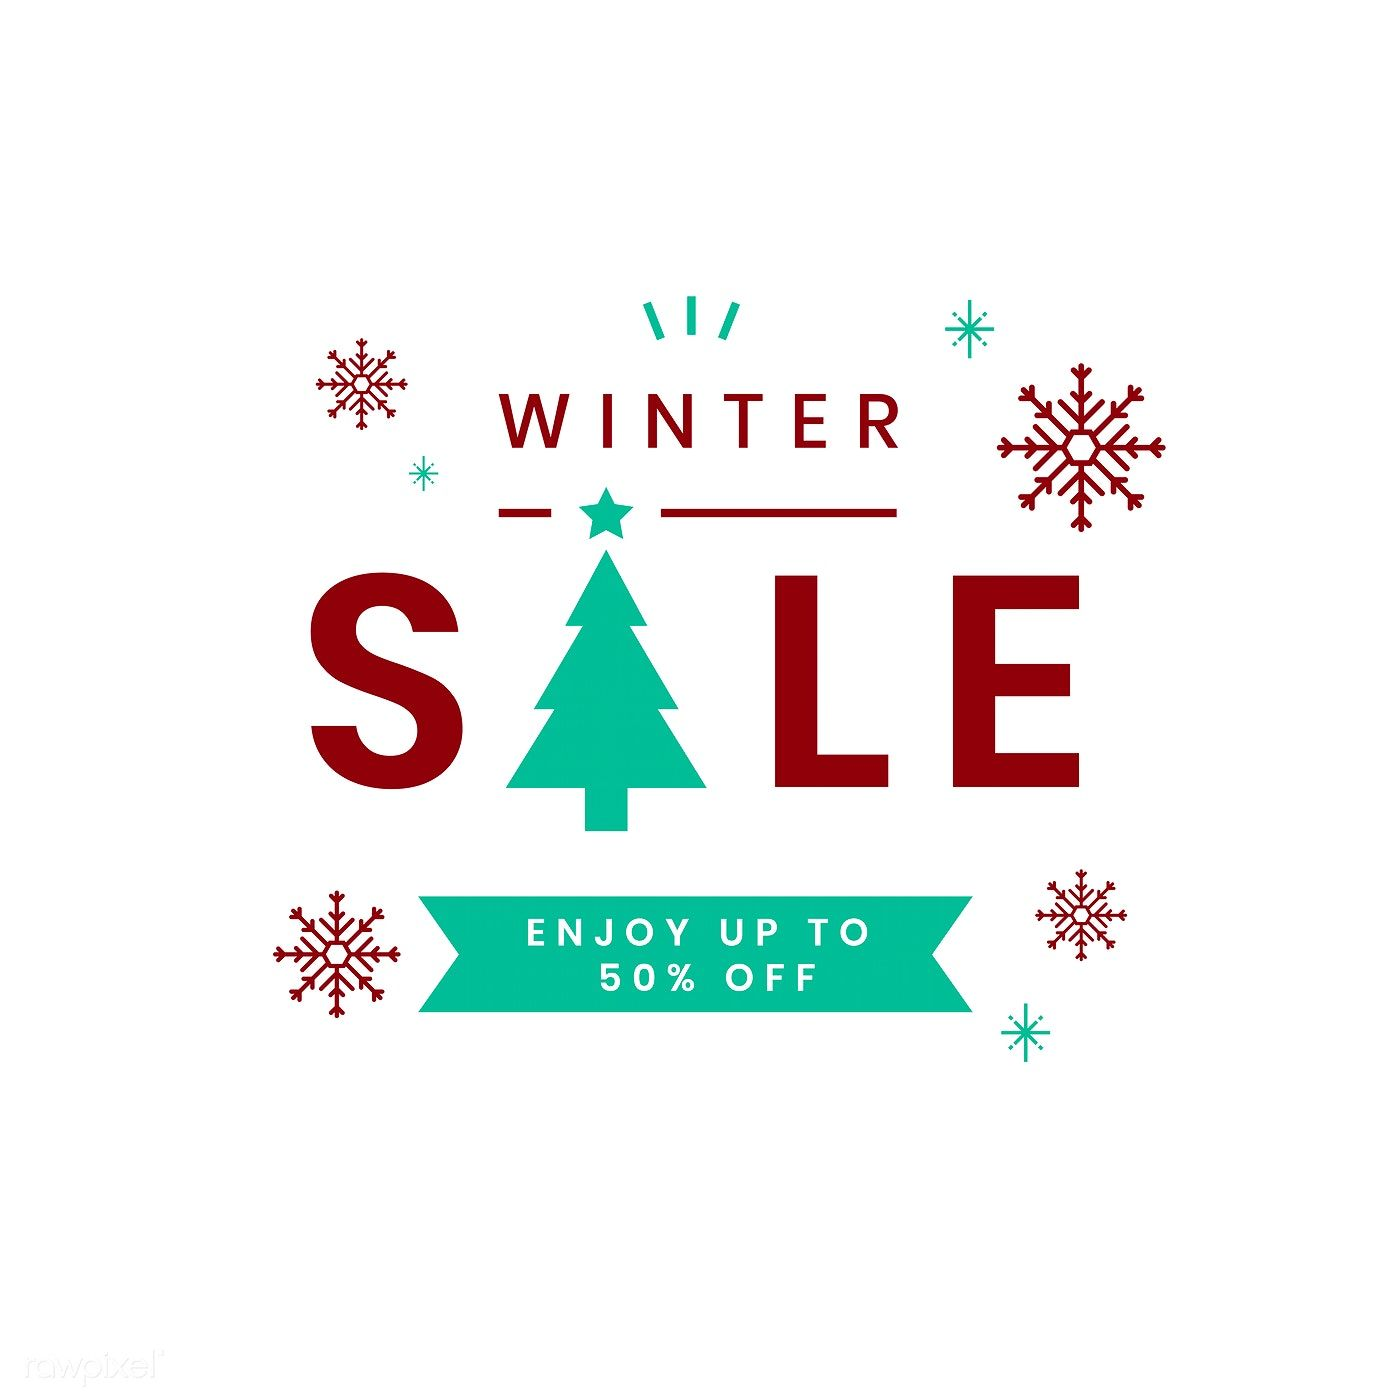 Christmas Special Sale 50 Off Vector Free Image By Rawpixel Com Wan Christmas Sale Poster Christmas Sale Christmas Special